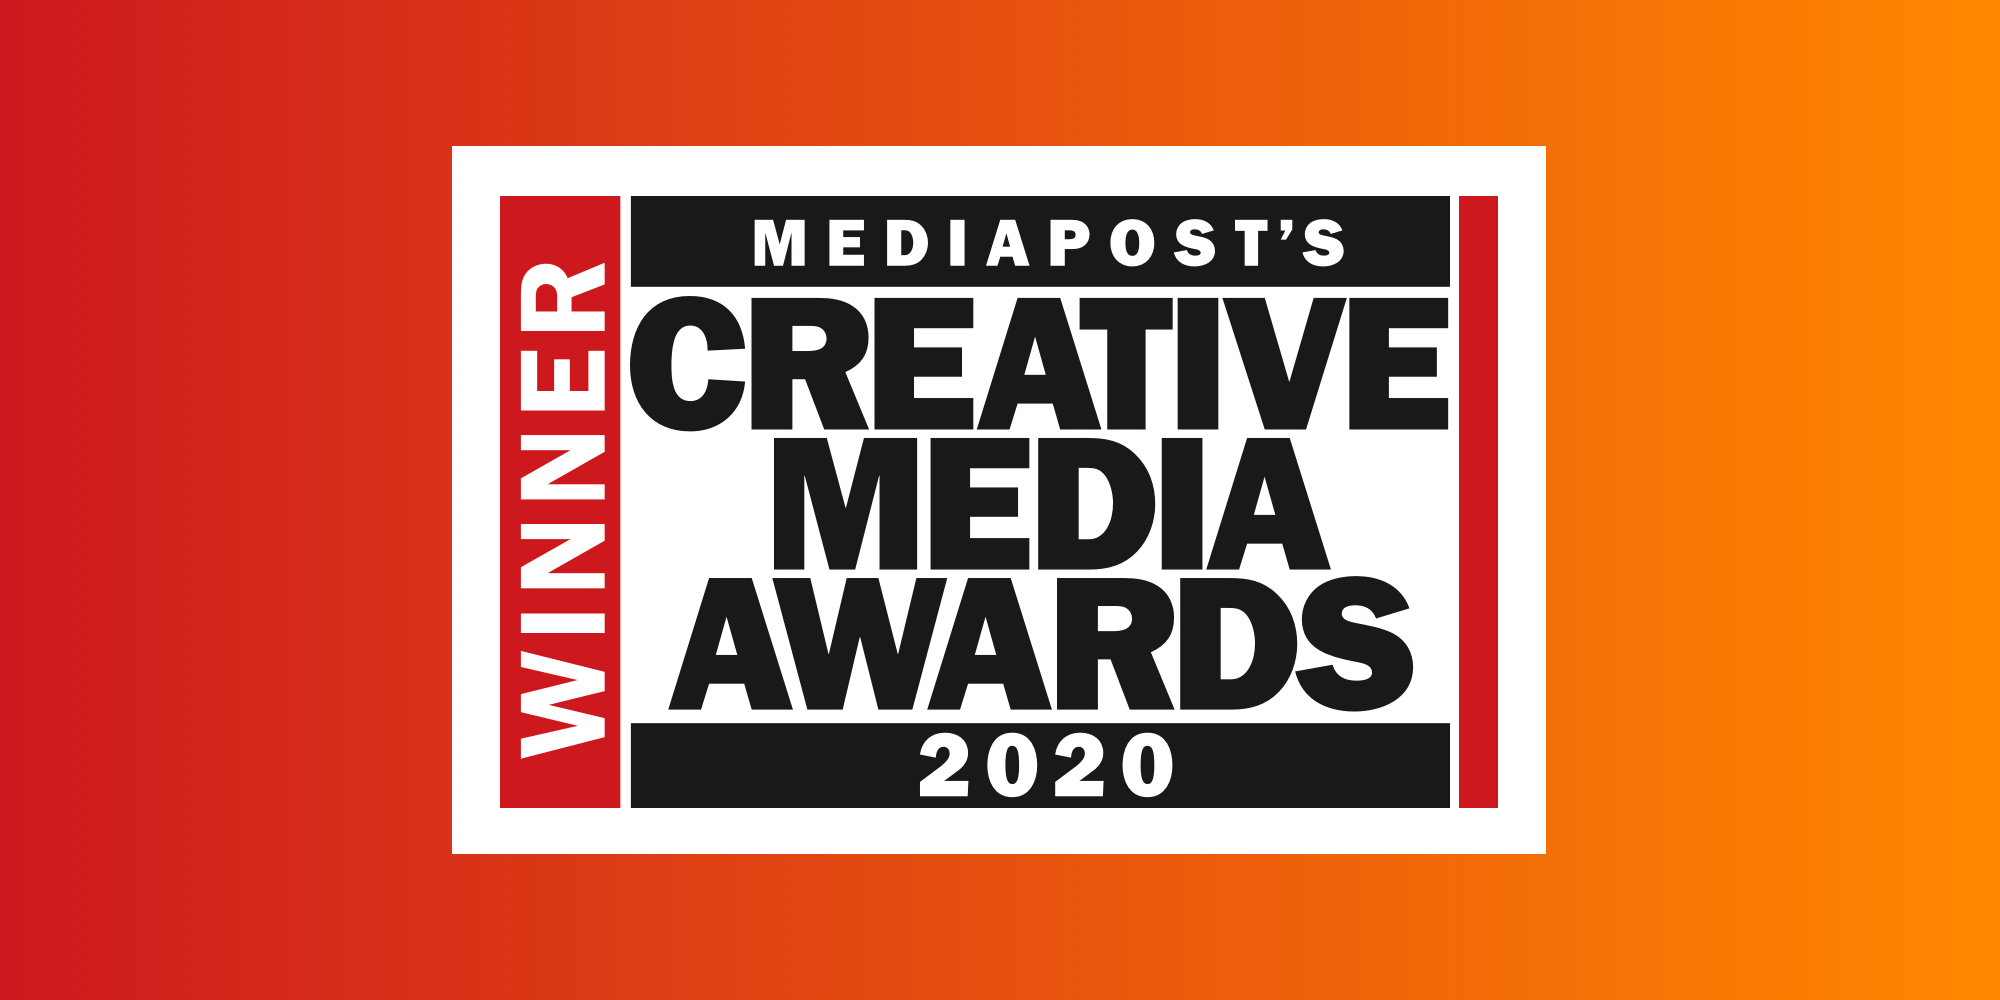 CE Media Wins MediaPost Creative Media Award